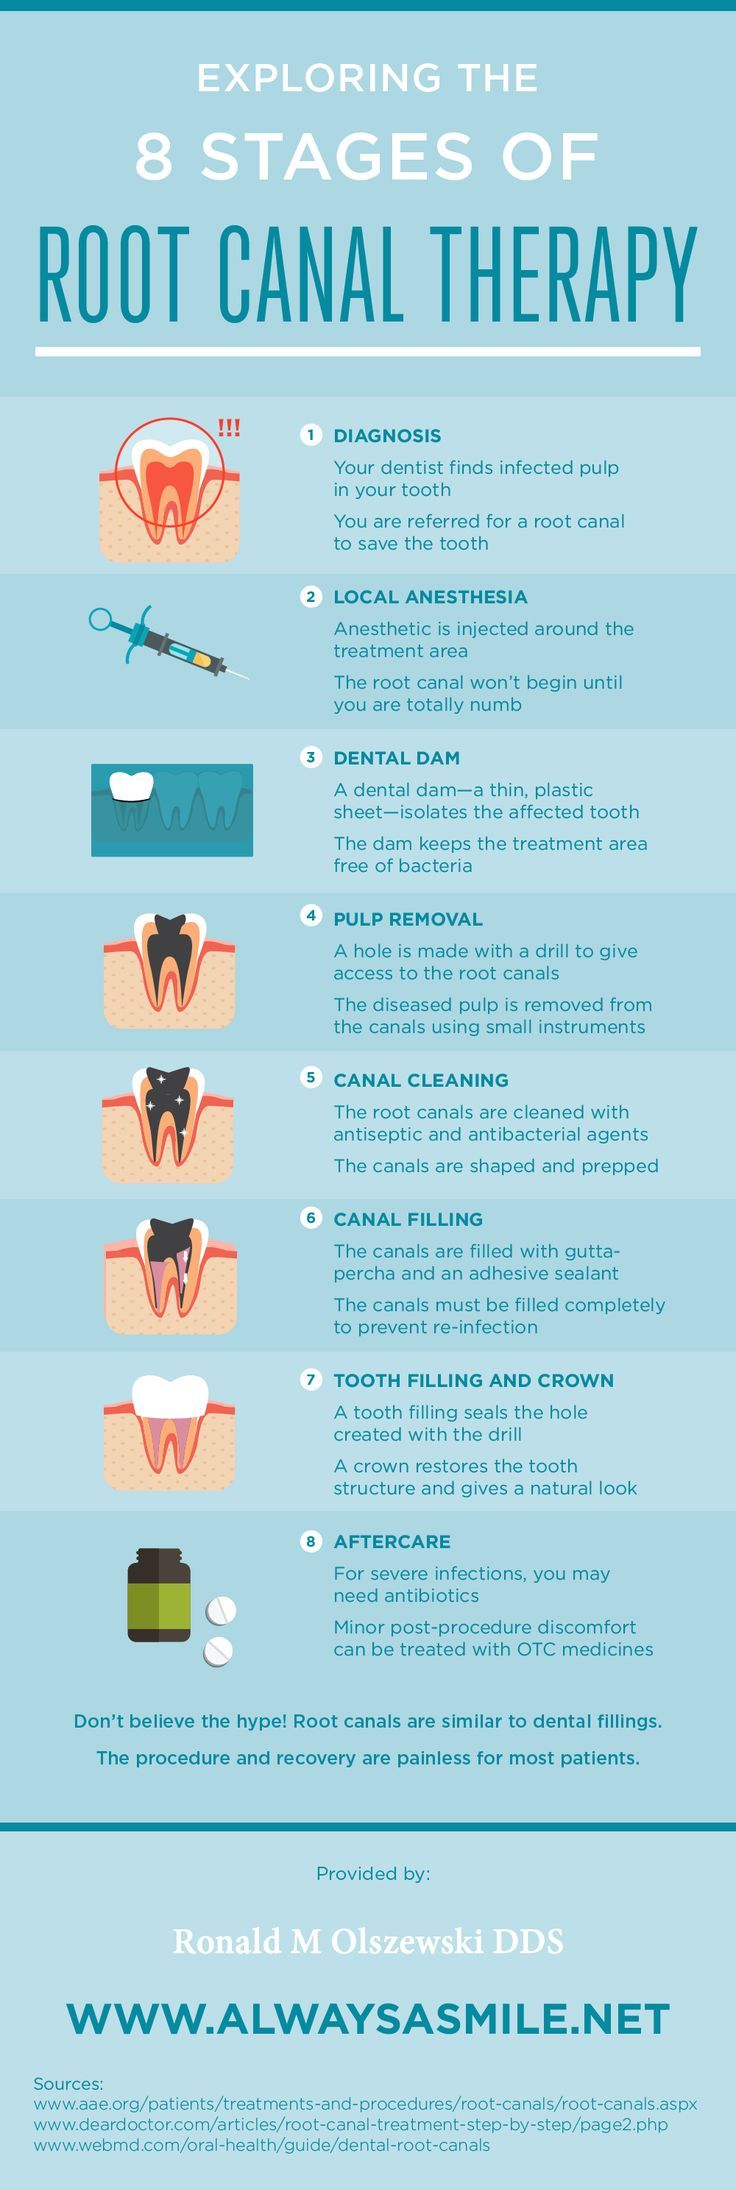 A root canal is often necessary if you find yourself with infected tooth pulp! Talk to your dentist and look through this infographic to learn about the root canal procedure.